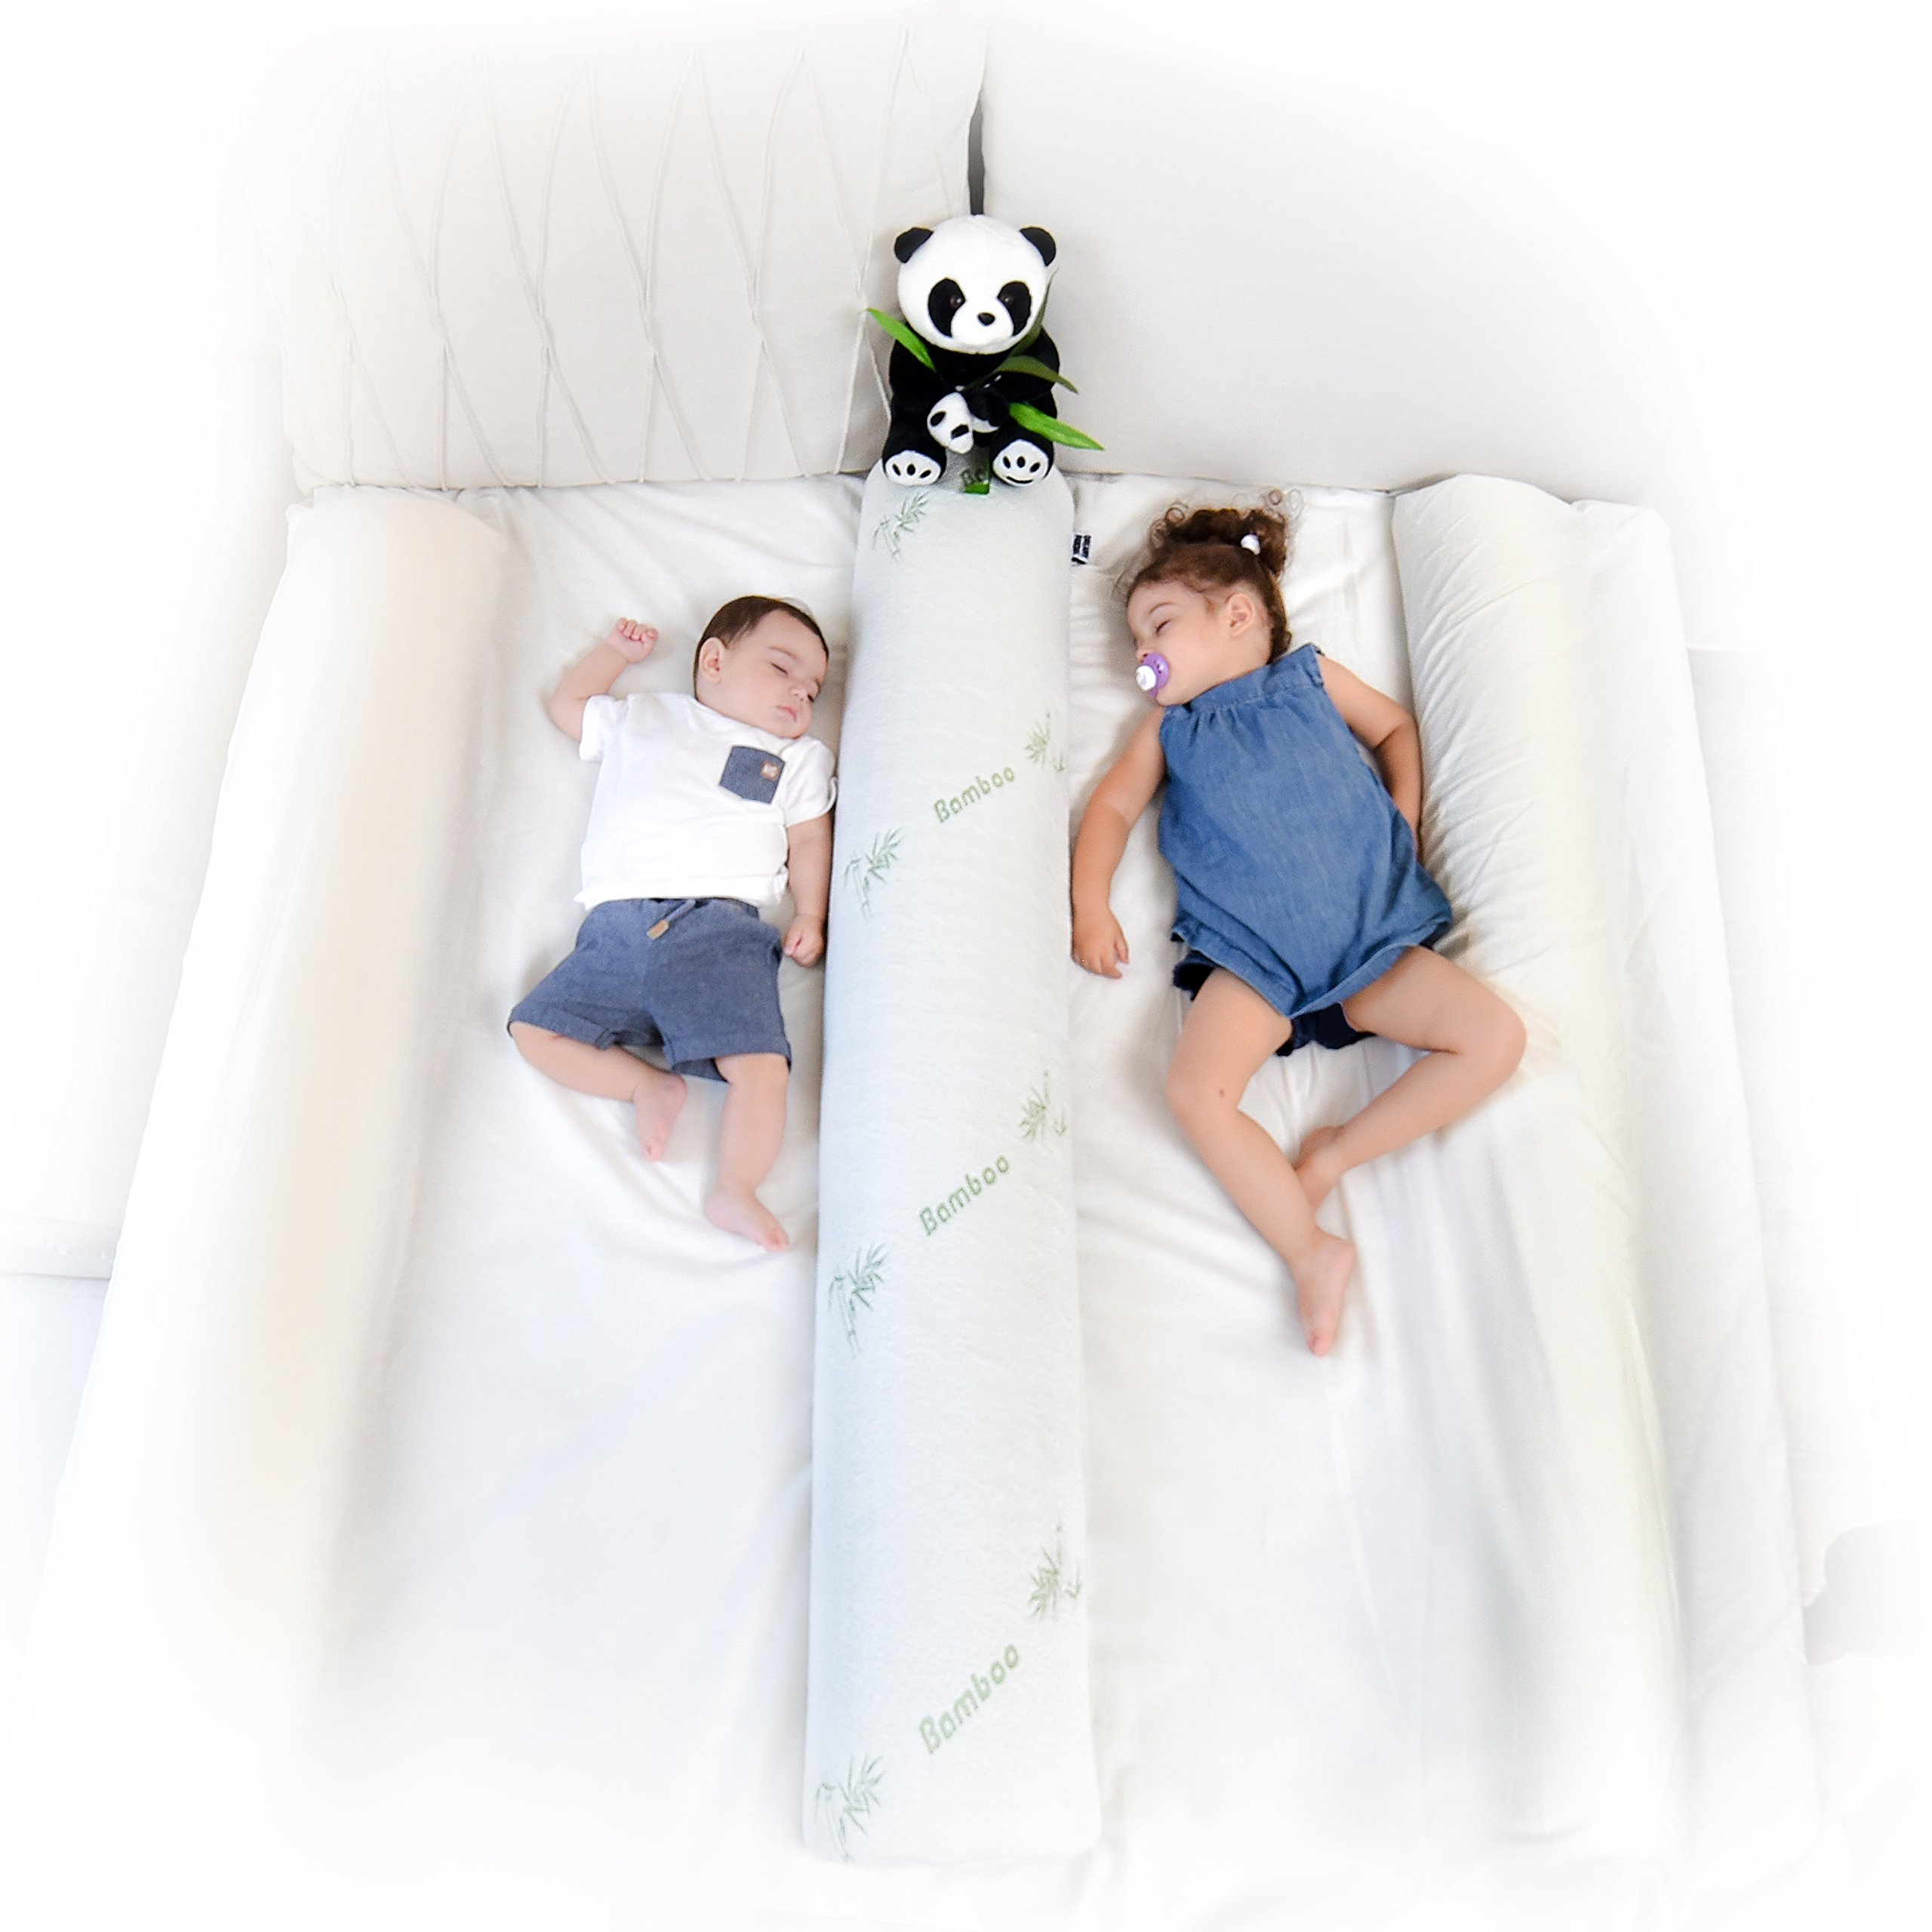 (2-Pack) DreamyPanda Toddler Bed Rail Bumper/Foam Guard for Bed - Large - Side Rail with Bamboo Cover - Pillow Pad for Toddlers, Kids [White Bamboo] by DREAMYPANDA